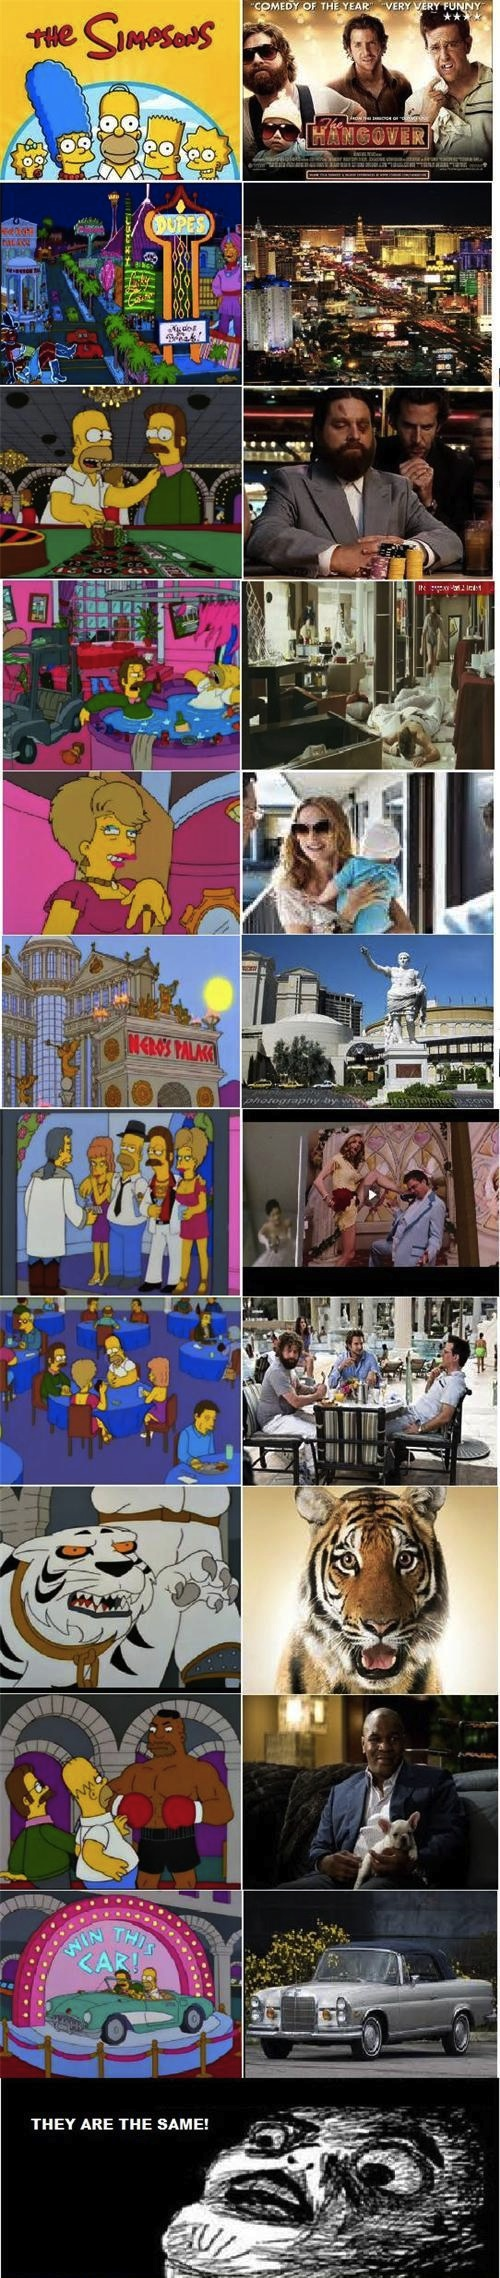 The Hangover y Los Simpson